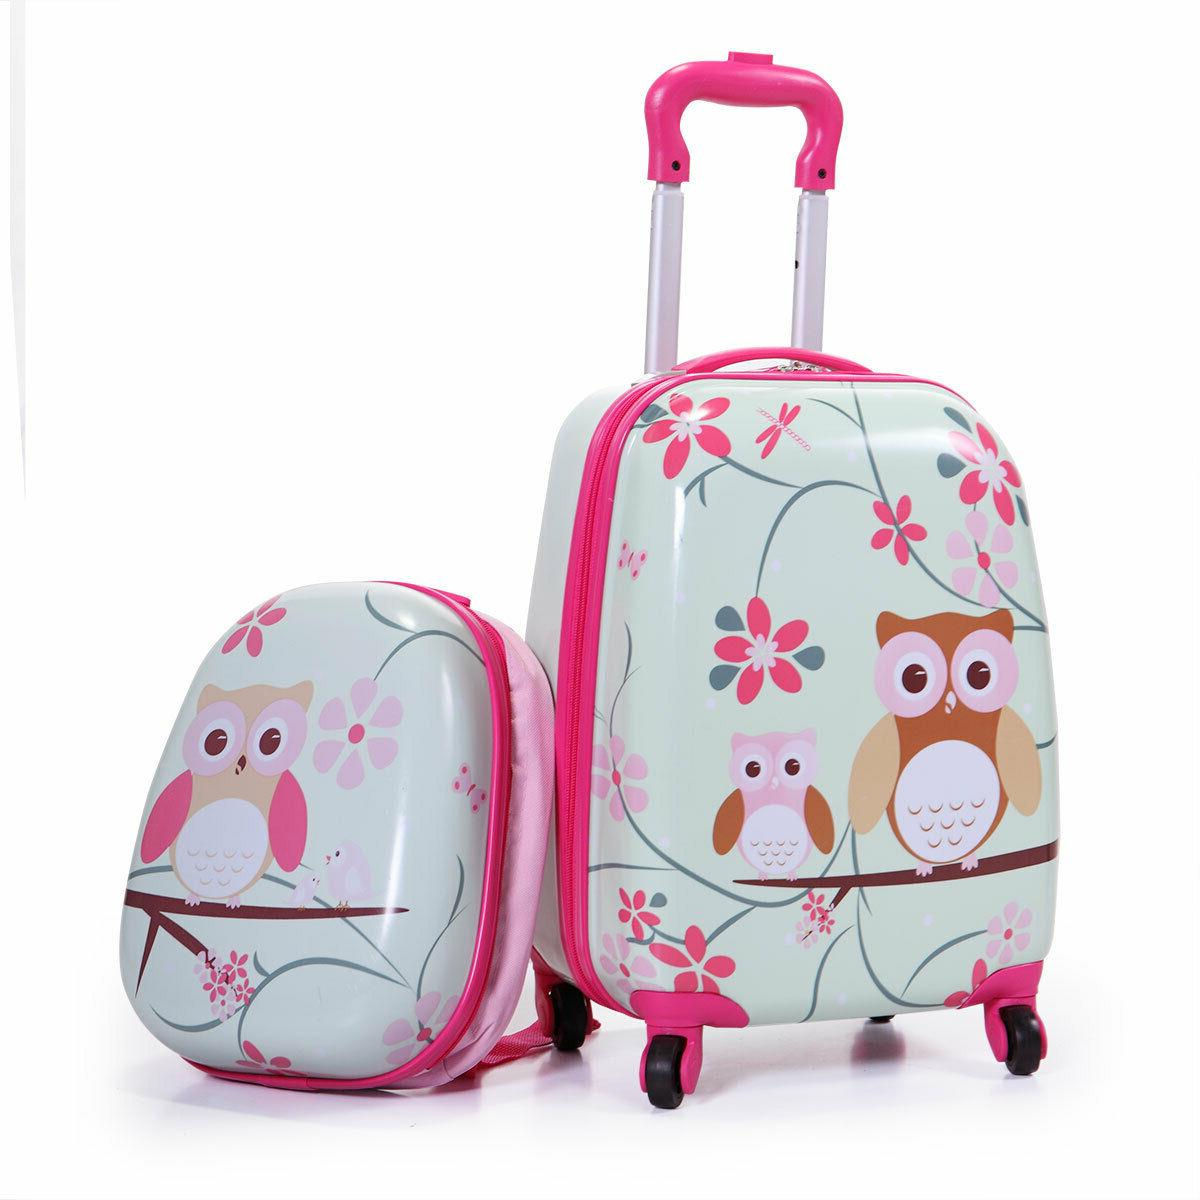 2Pcs Carry On Luggage With Suitcase Cute Set